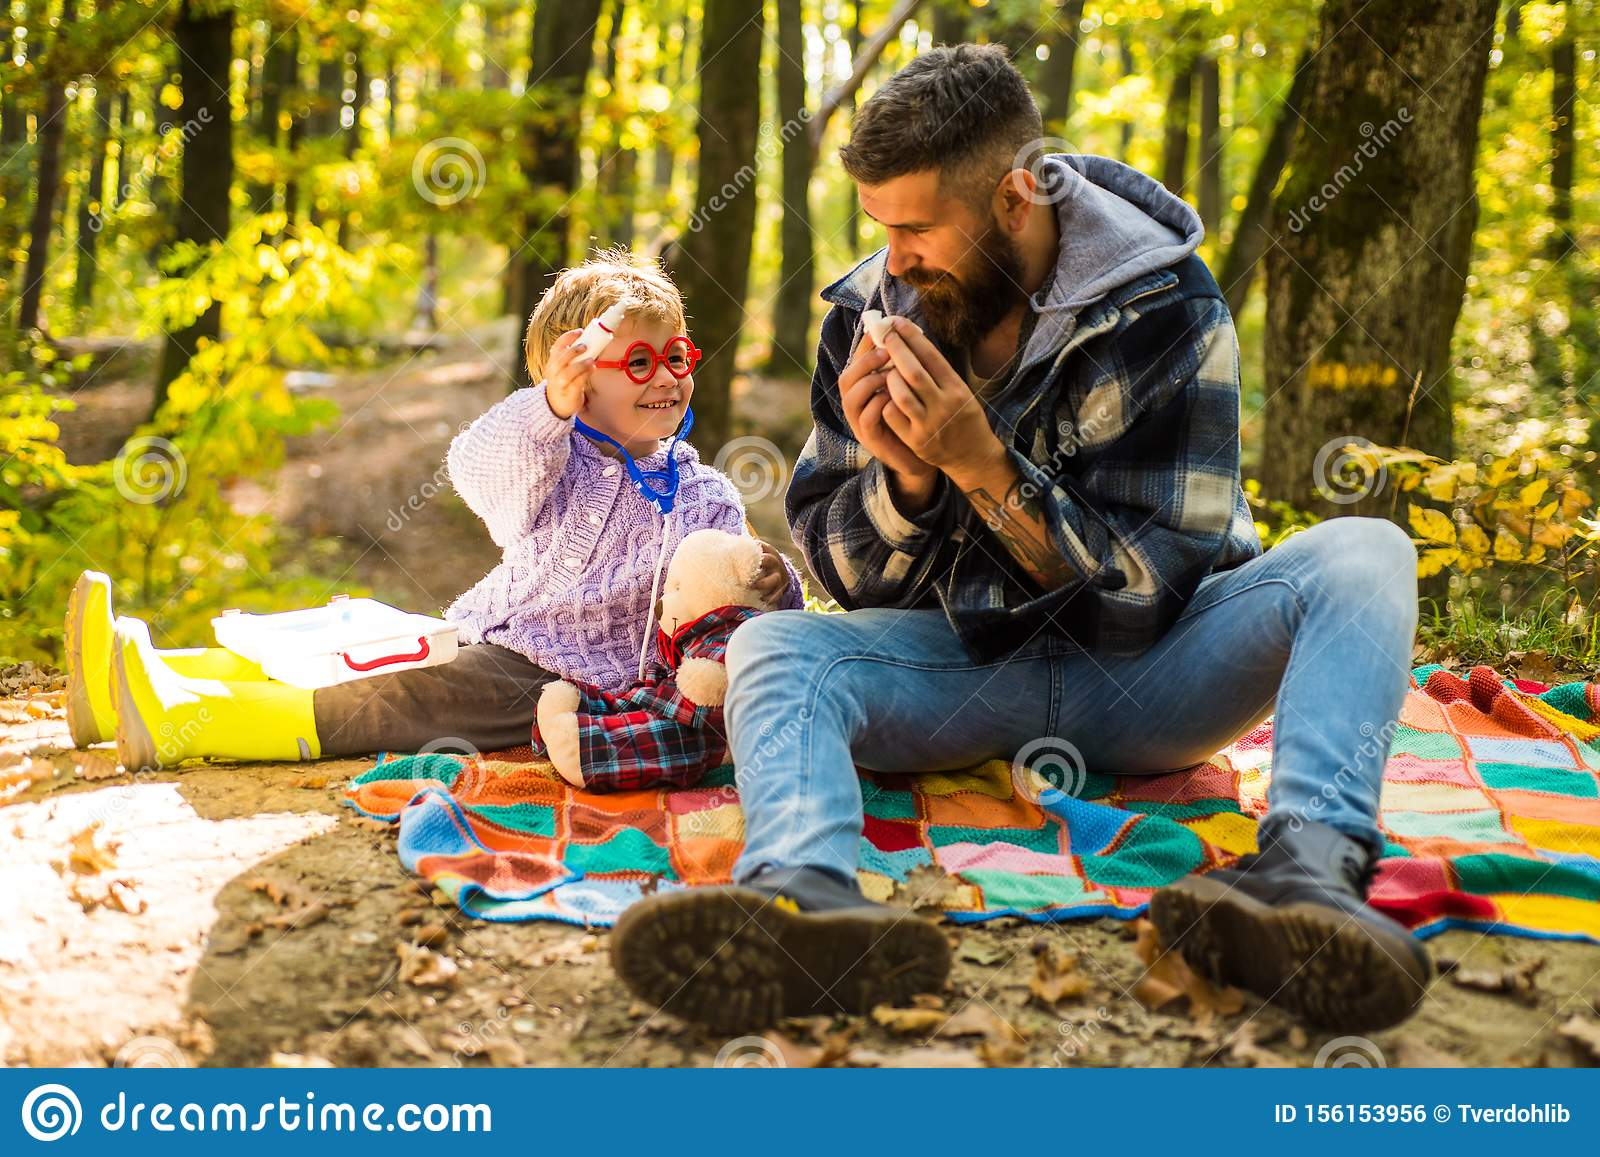 Atumn fun at the park. Sick people has runny nose. Both dad and child are laughing. Little boy with his father in autumn